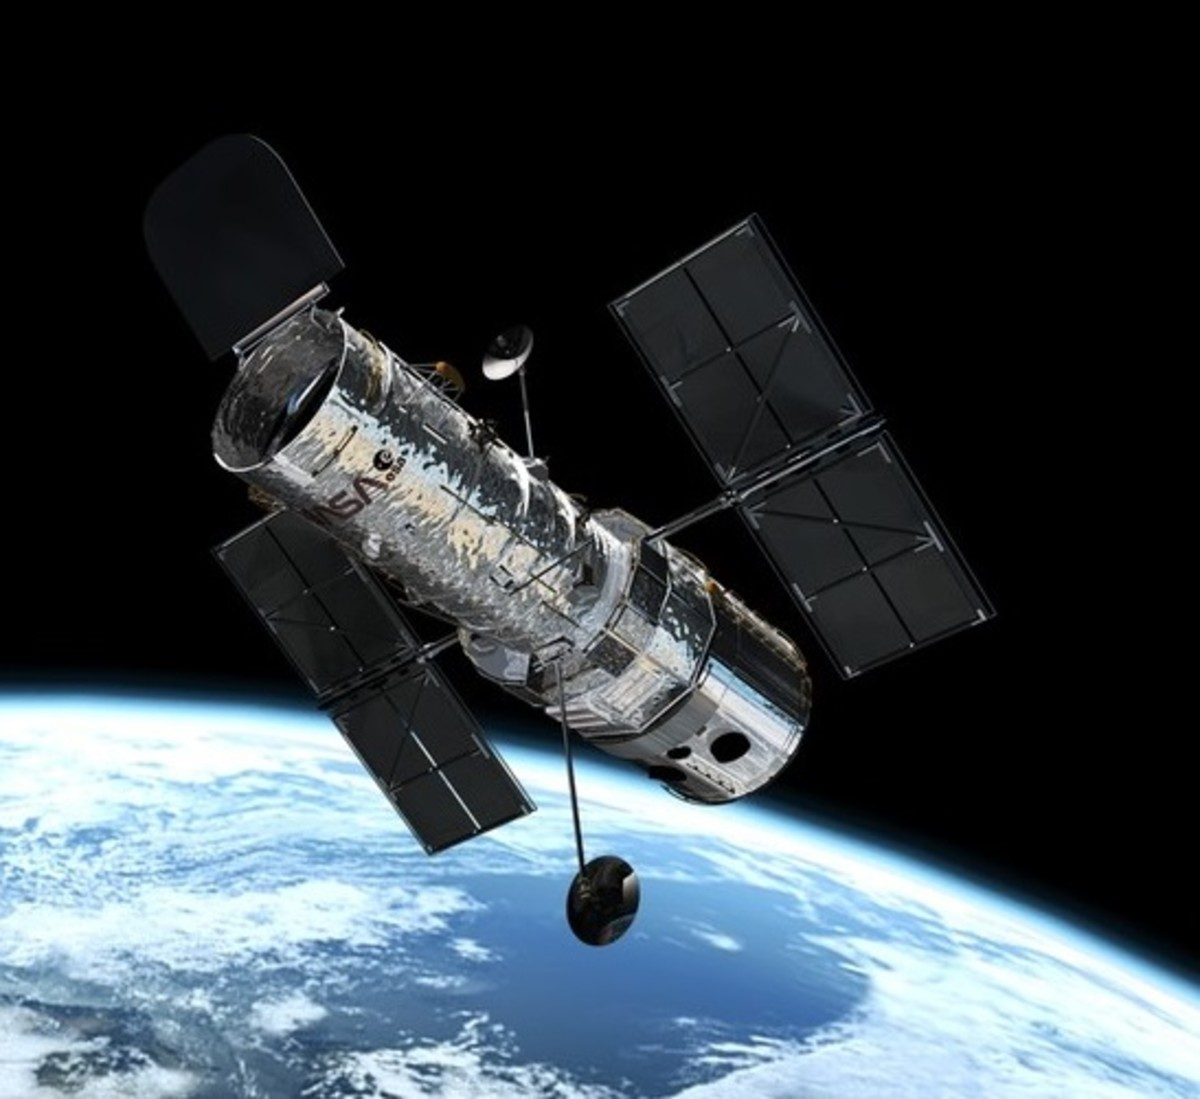 Top 10 Hubble Telescope Discoveries (page 4) - Pics about ...